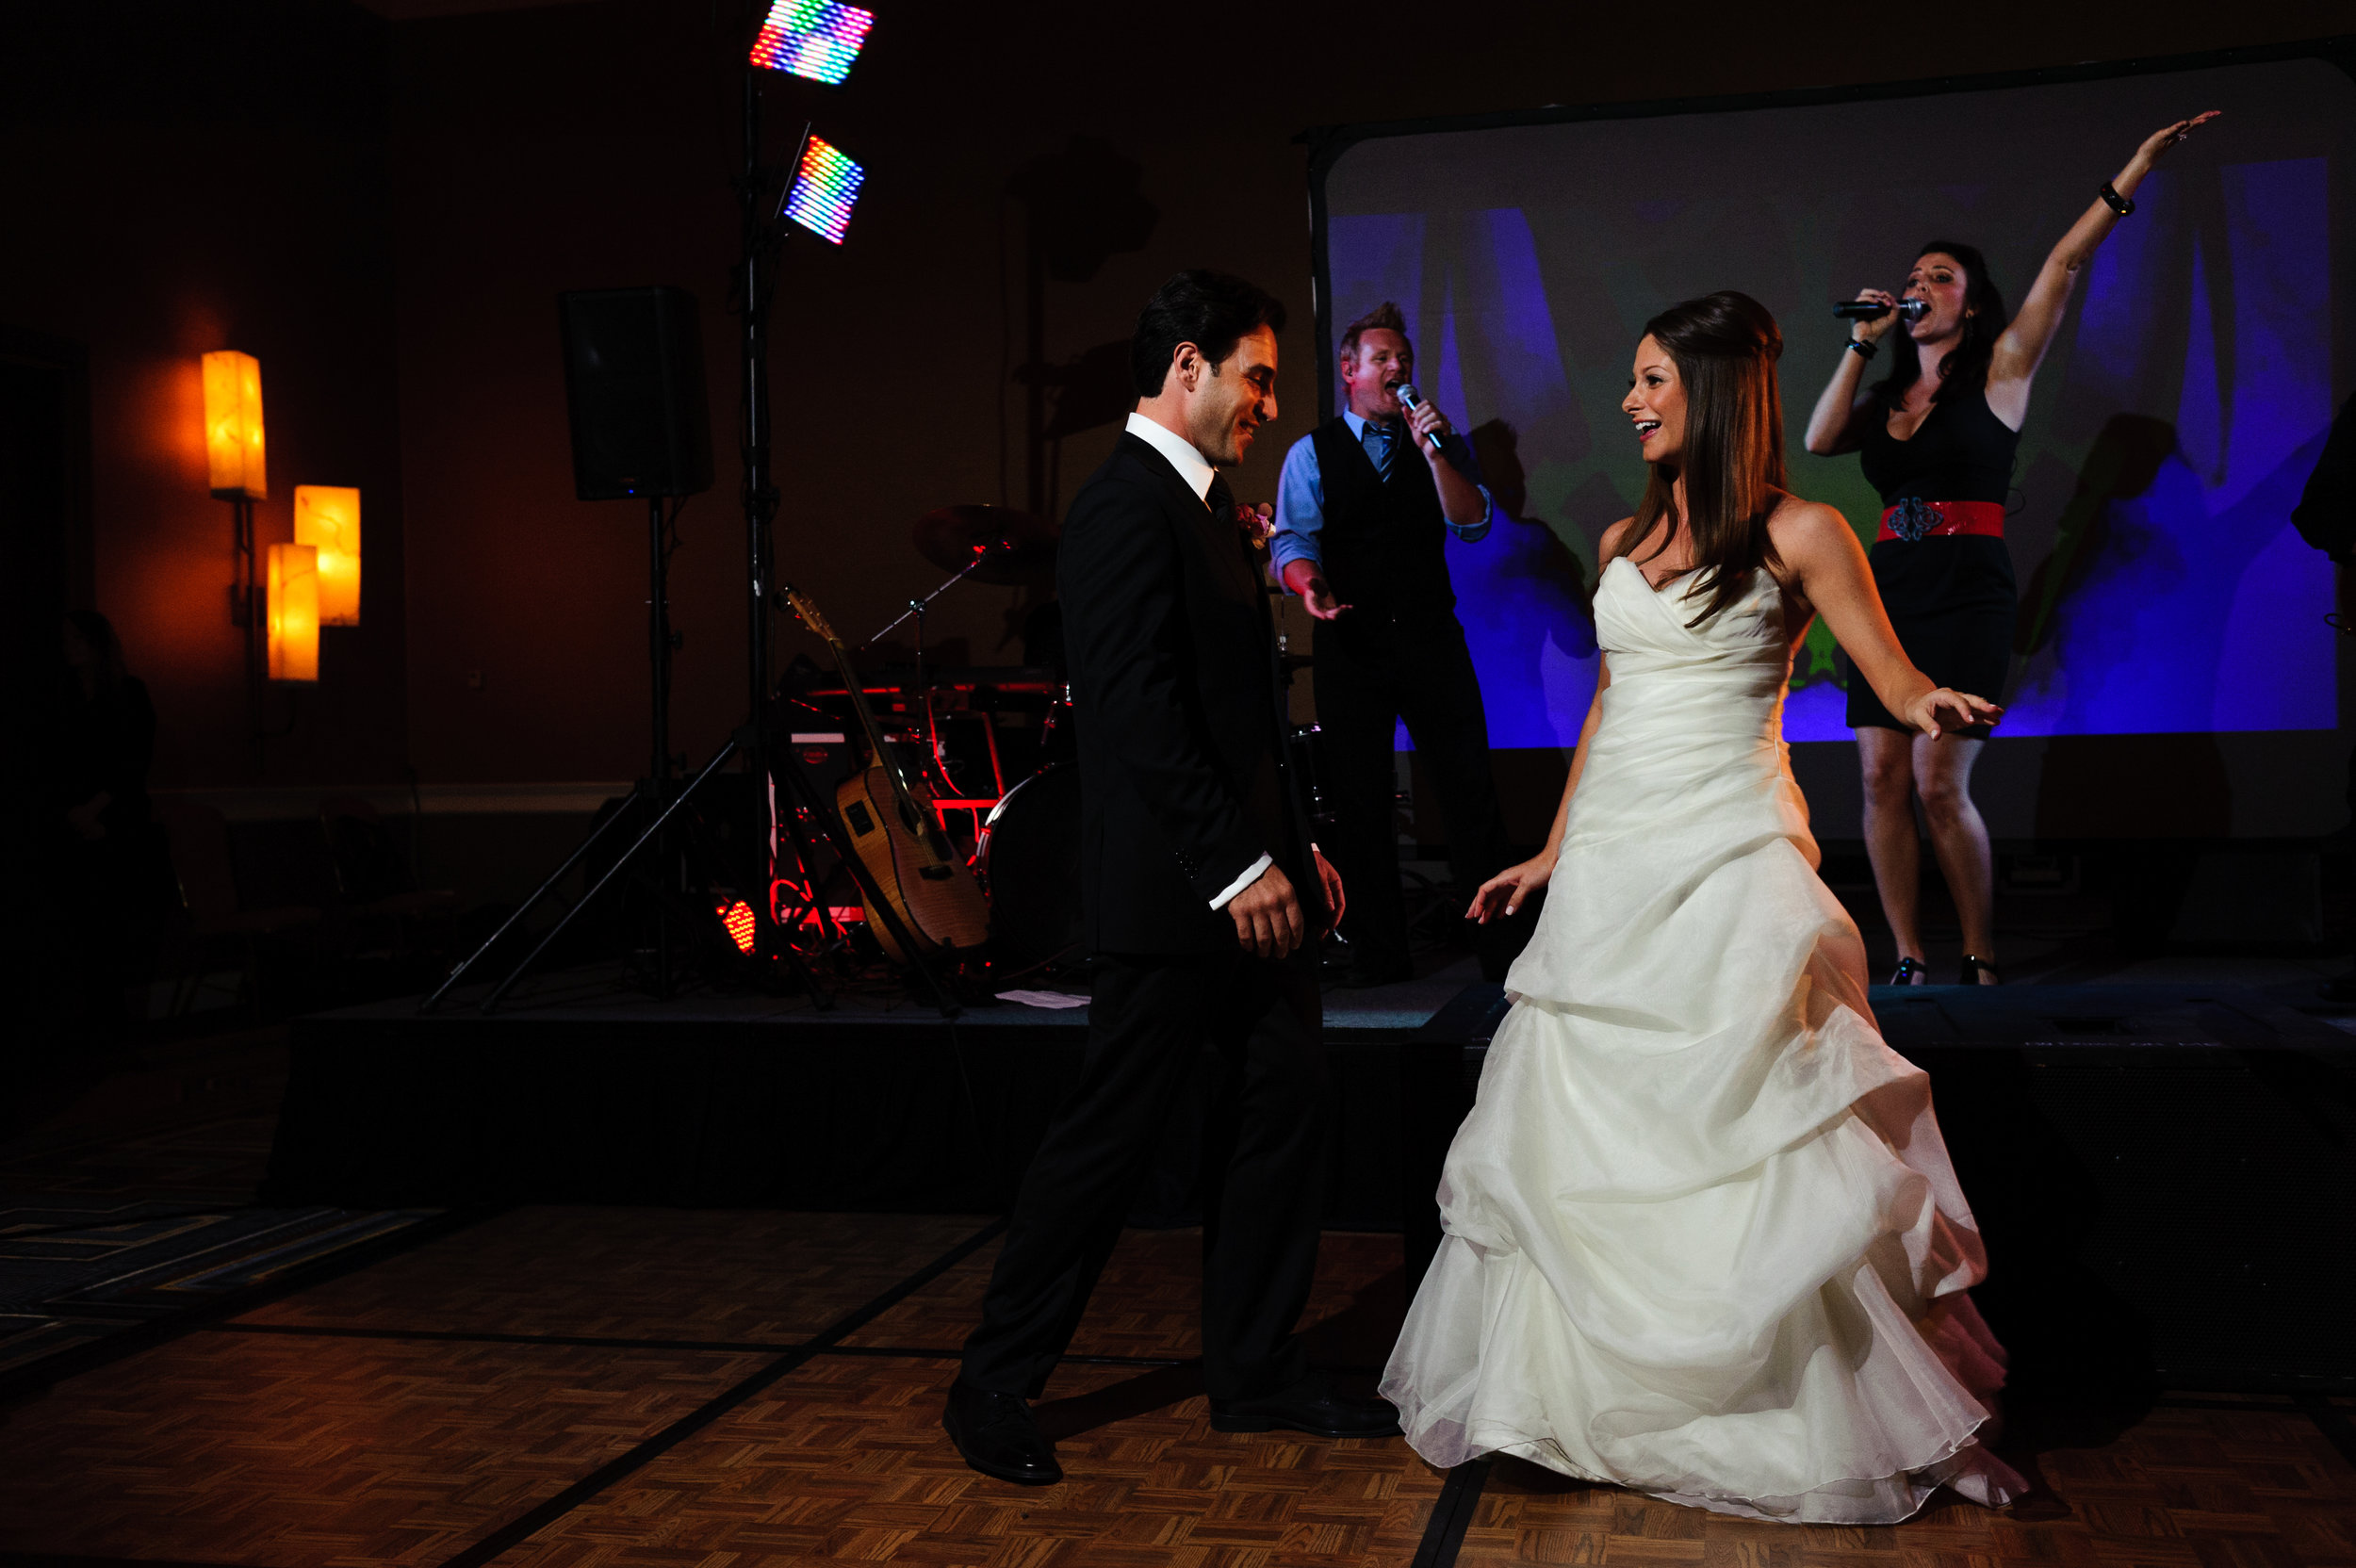 30 bride and groom first dance bride and groom on dance floor special moment with bride and groom Sergio Photography Life Design Events.JPG